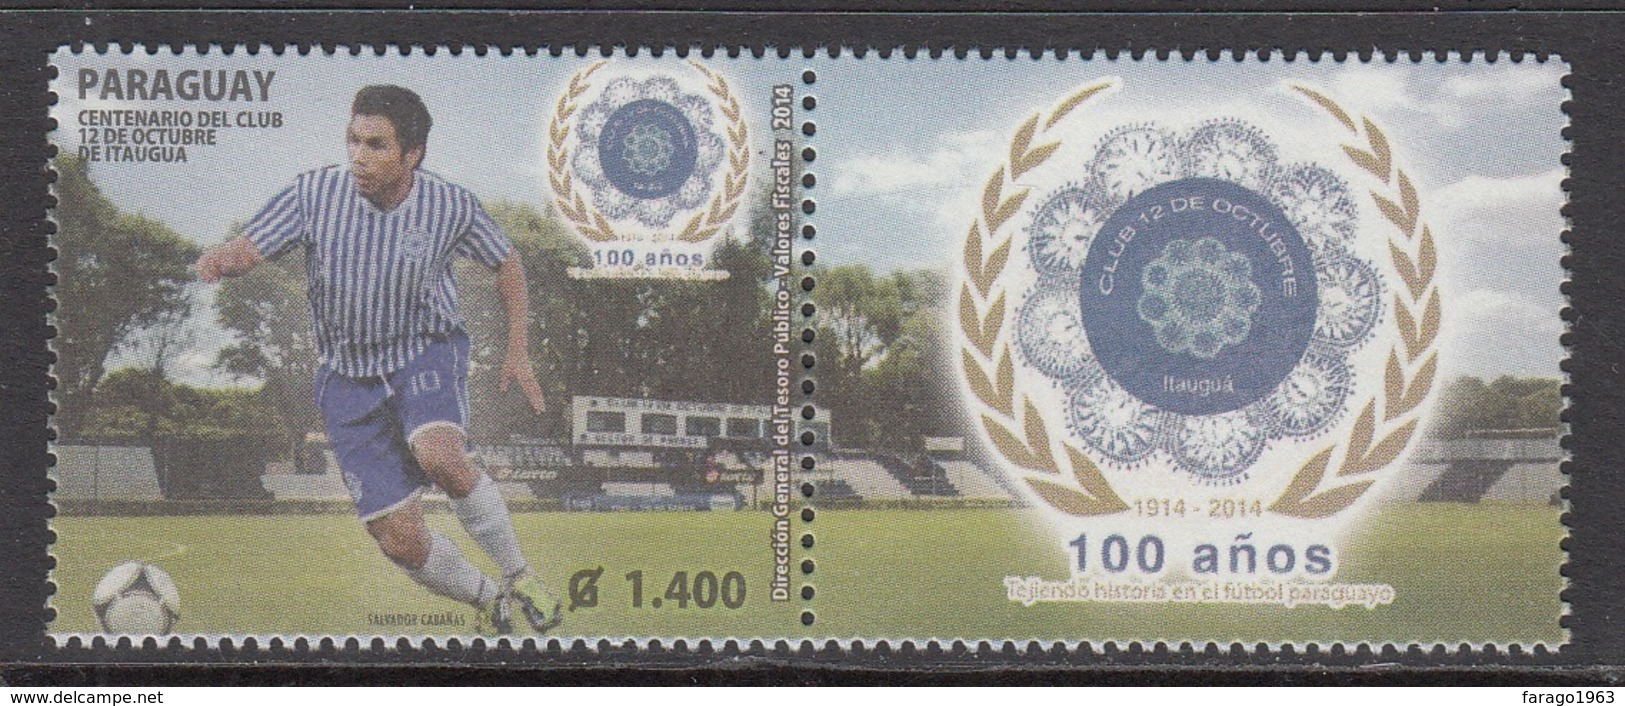 2014 Paraguay Cabanas Football  Complete Set Of 1 + Tab MNH - Paraguay